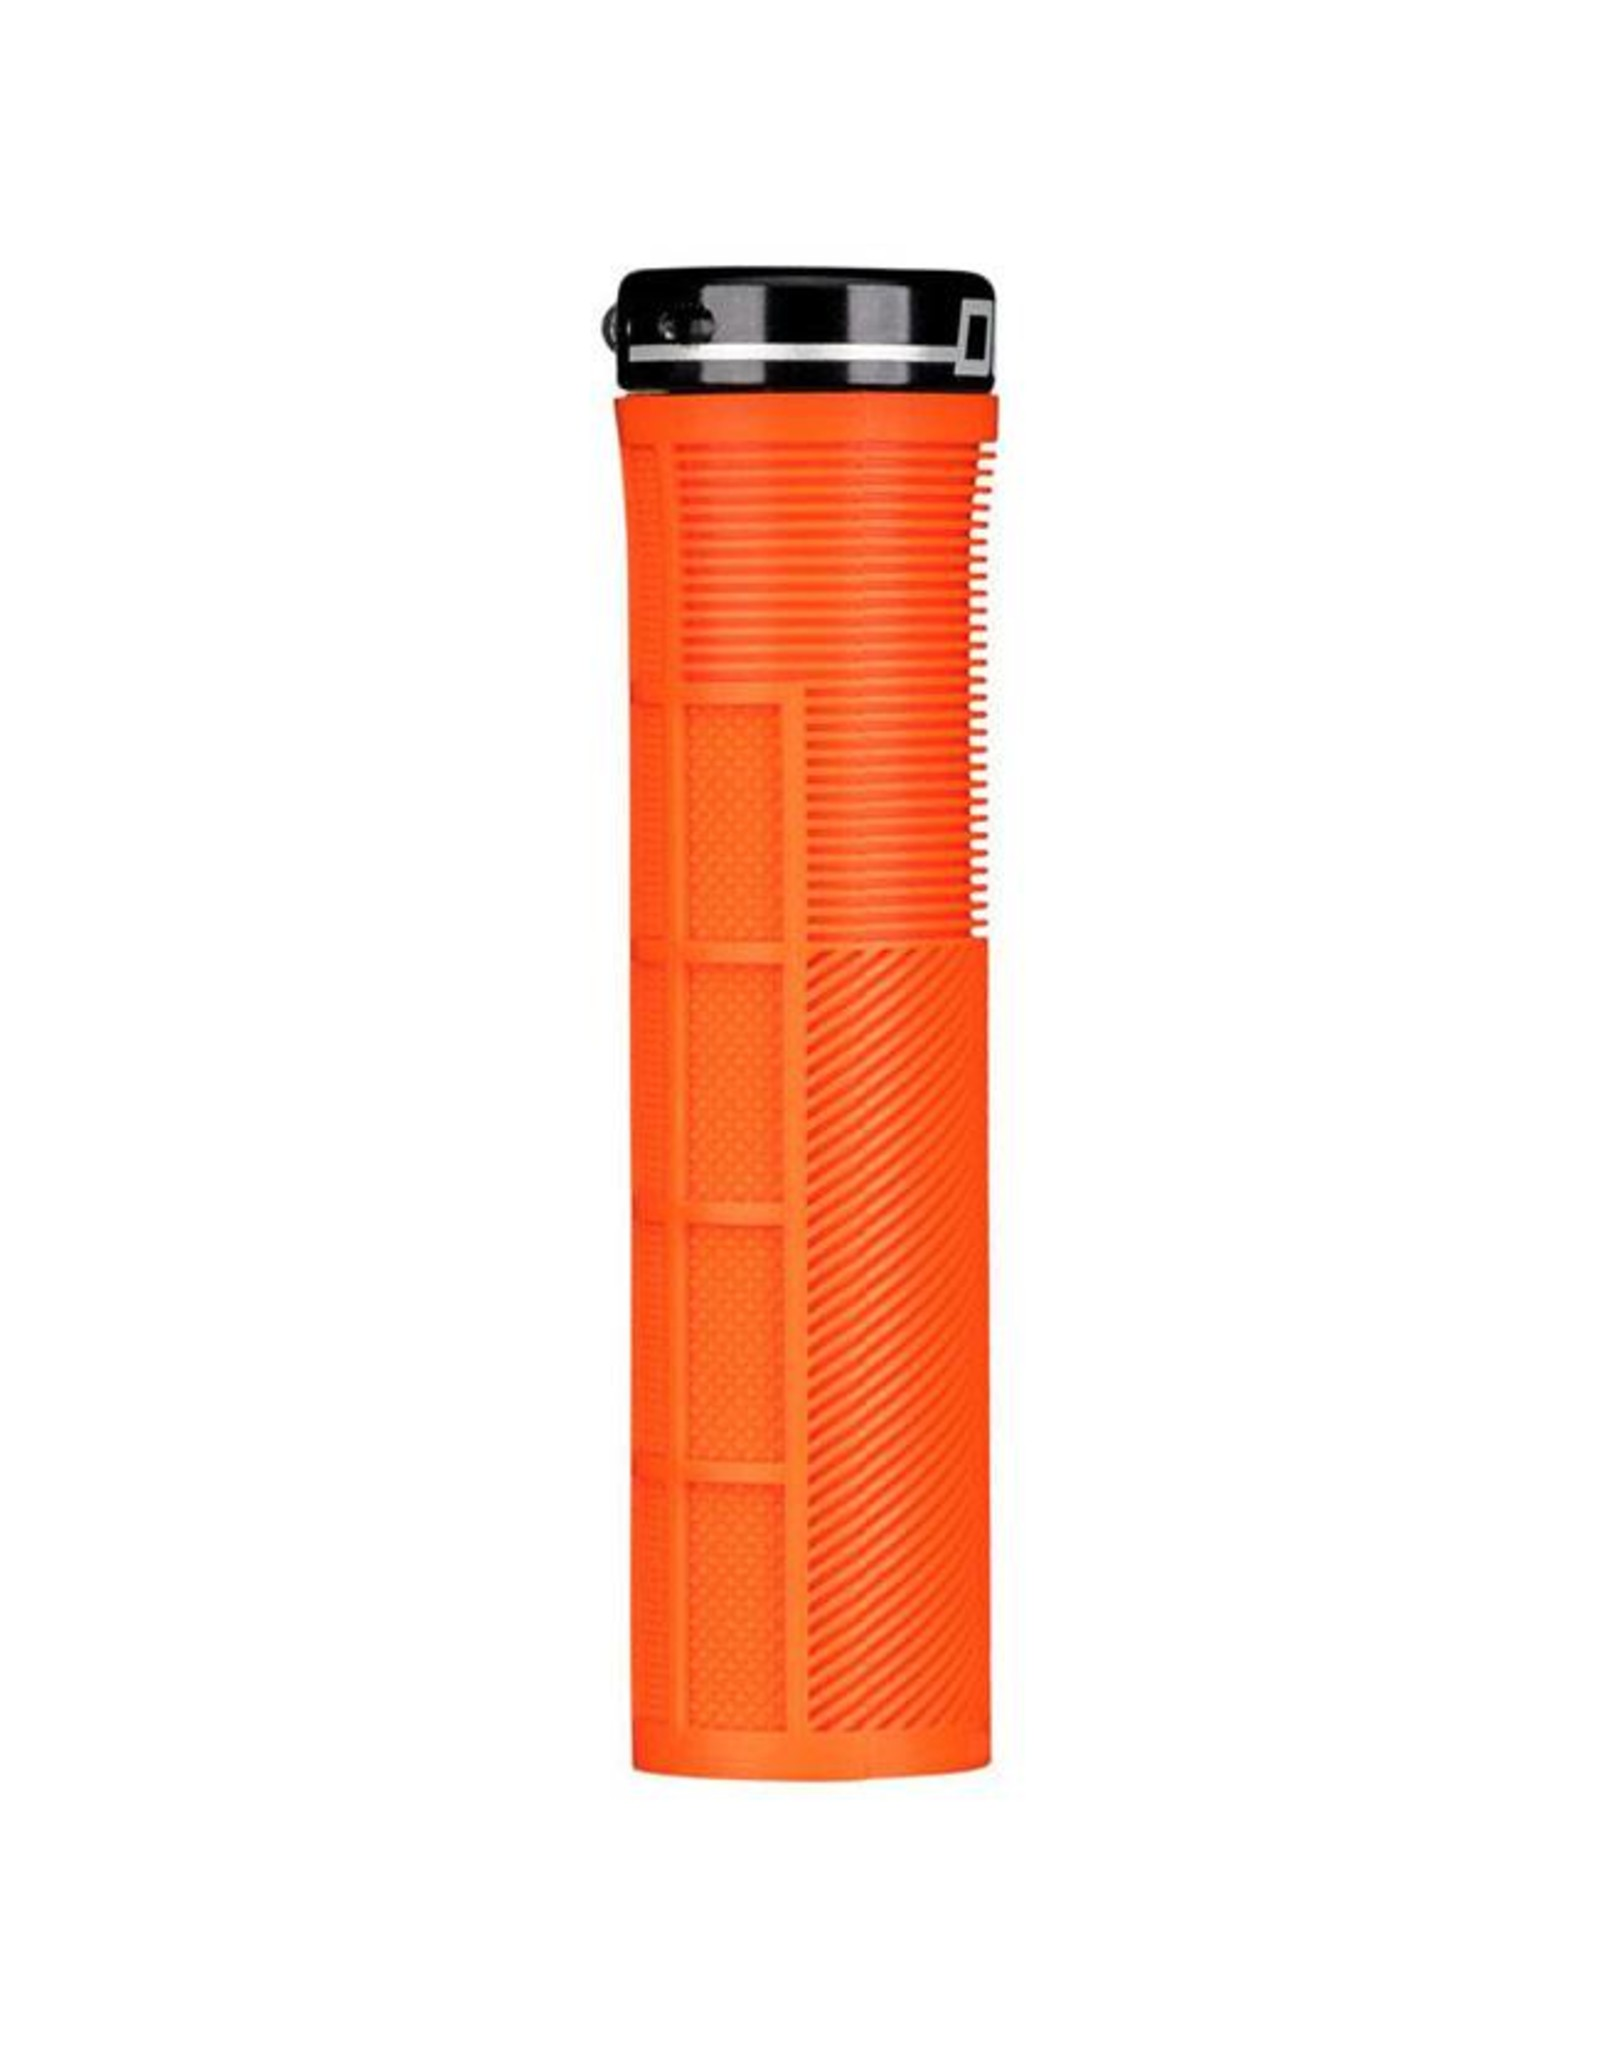 Deity Components Deity Knuckleduster Lock-on Grips: Orange with Black Clamp